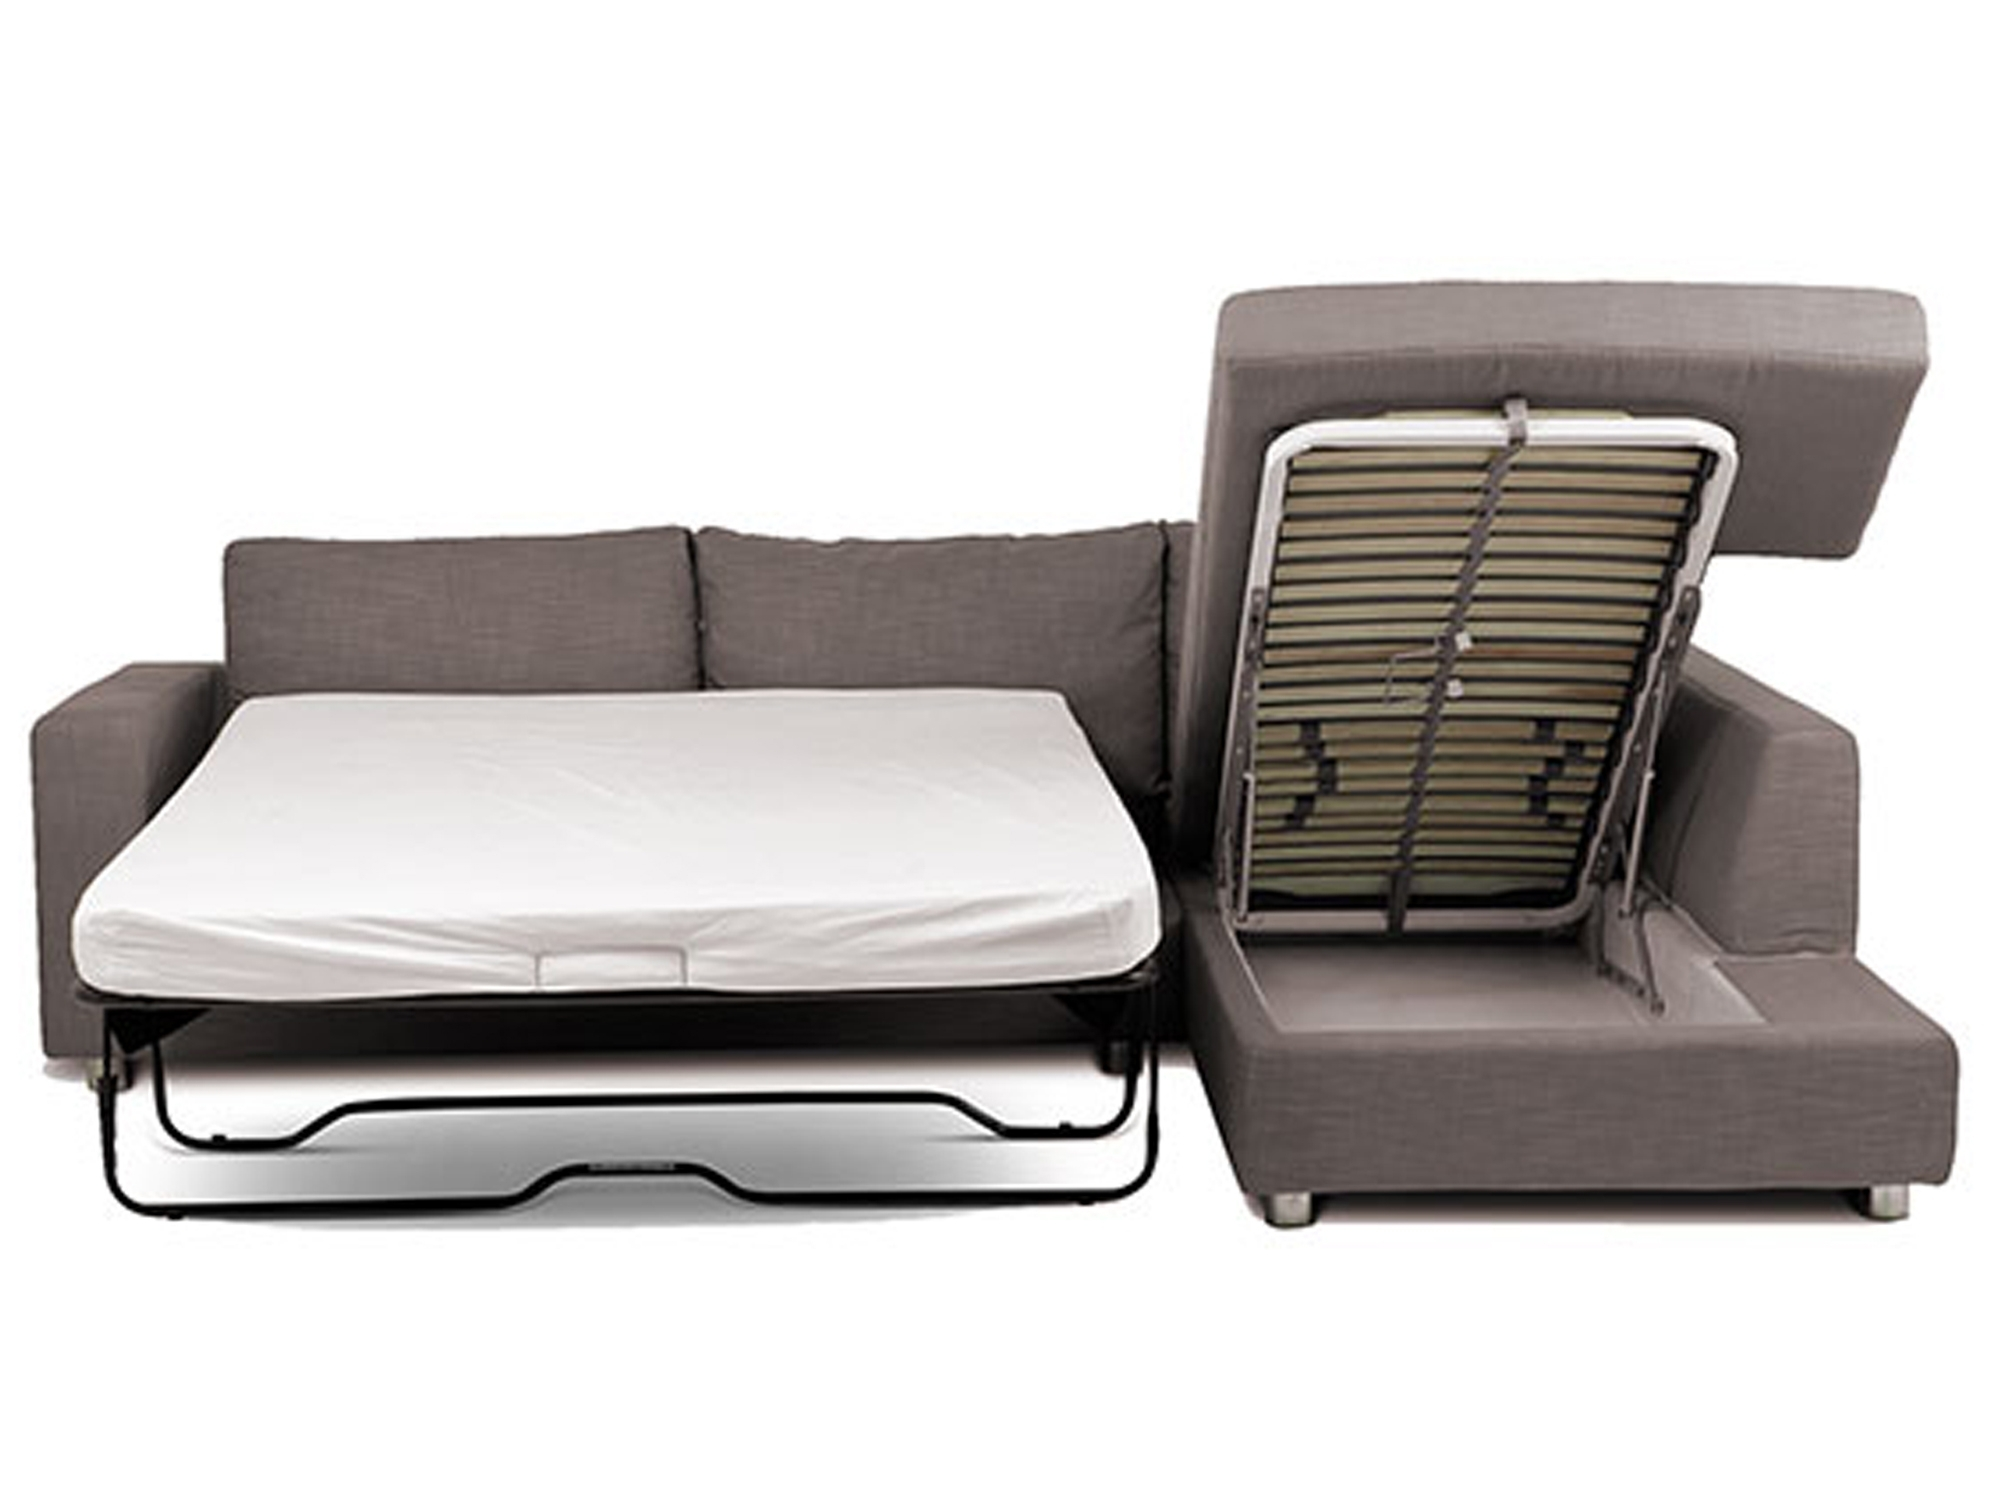 Sofas: Classic Meets Contemporary Chaise Sofa Bed For Ideal Living With Regard To Well Liked Corner Chaise Lounges (View 12 of 15)